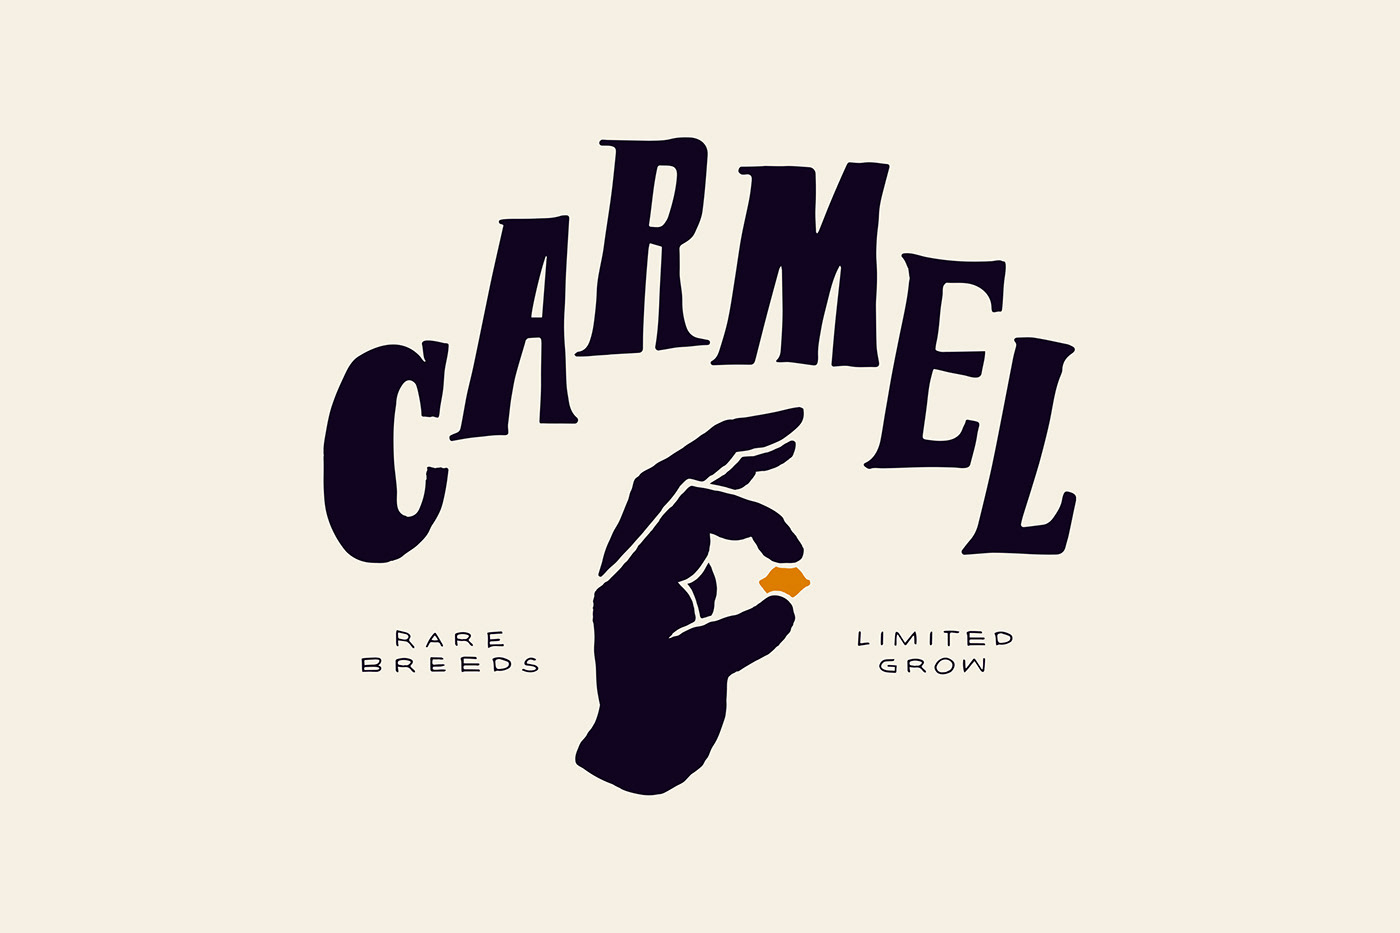 Thumbnail for Carmel Cannabis Is Both Artisanal And Intentional Through Its Branding System